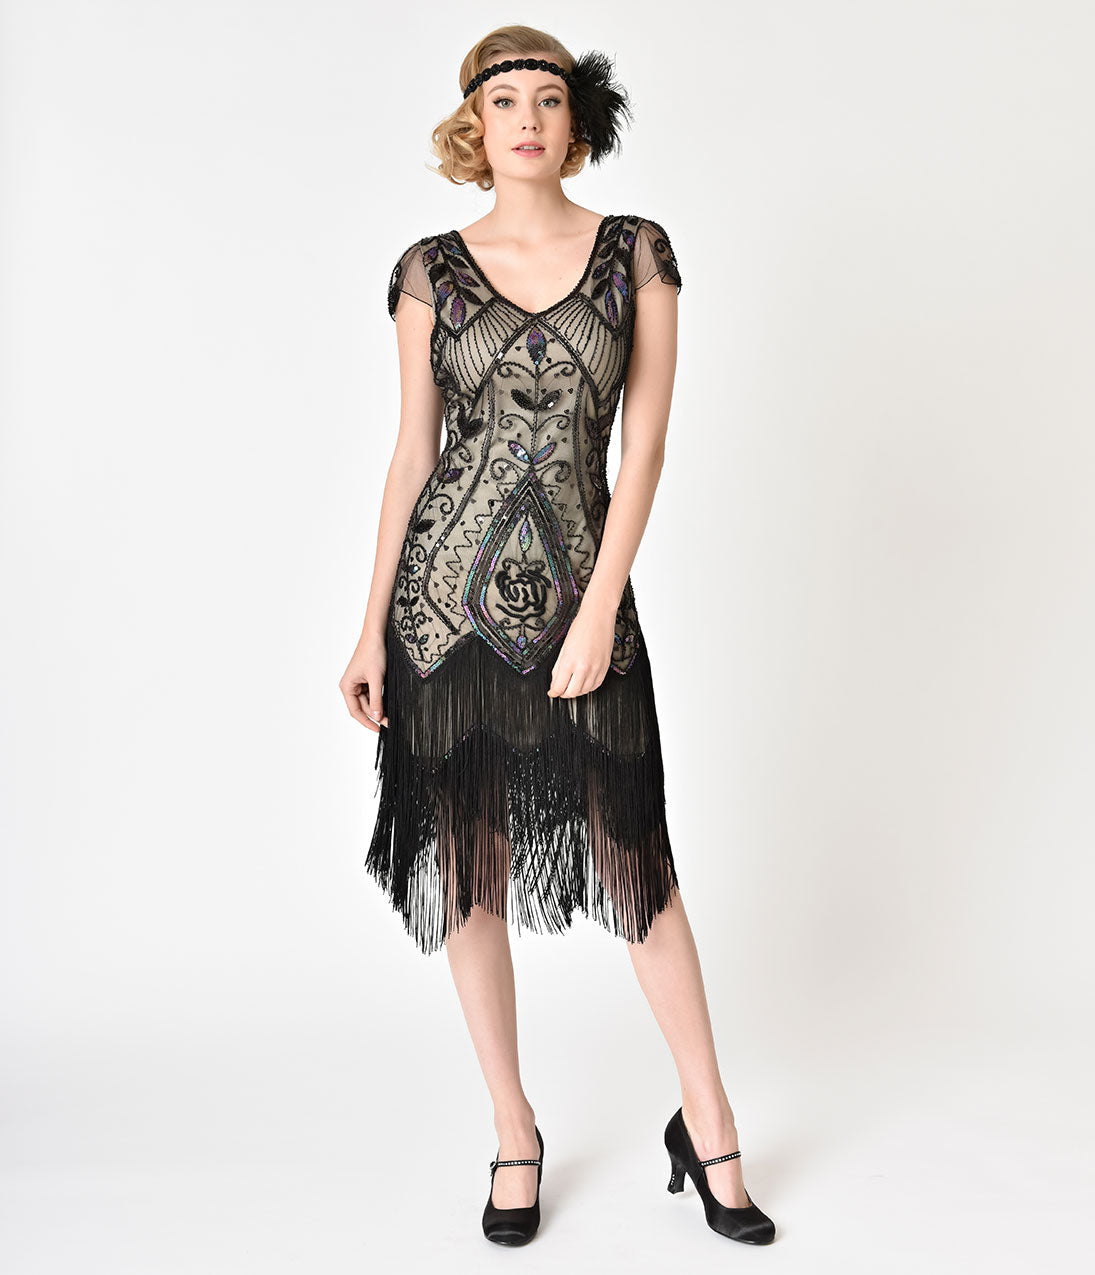 Roaring 20s Costumes- Flapper Costumes, Gangster Costumes Unique Vintage 1920S Black Rose  Champagne Noele Fringe Flapper Dress $74.00 AT vintagedancer.com